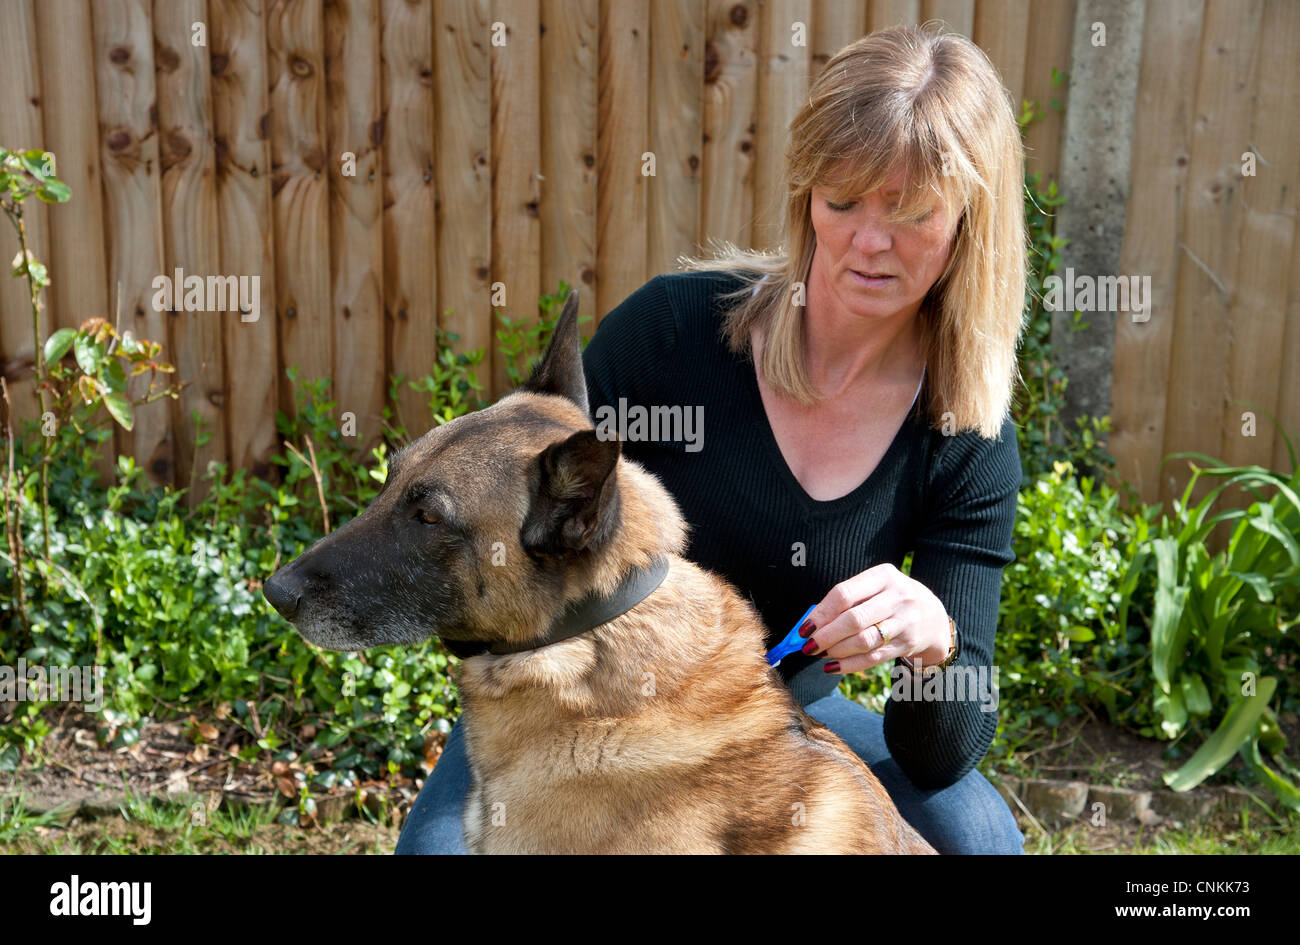 Woman applying monthly flea prevention treatment to her dog - Stock Image